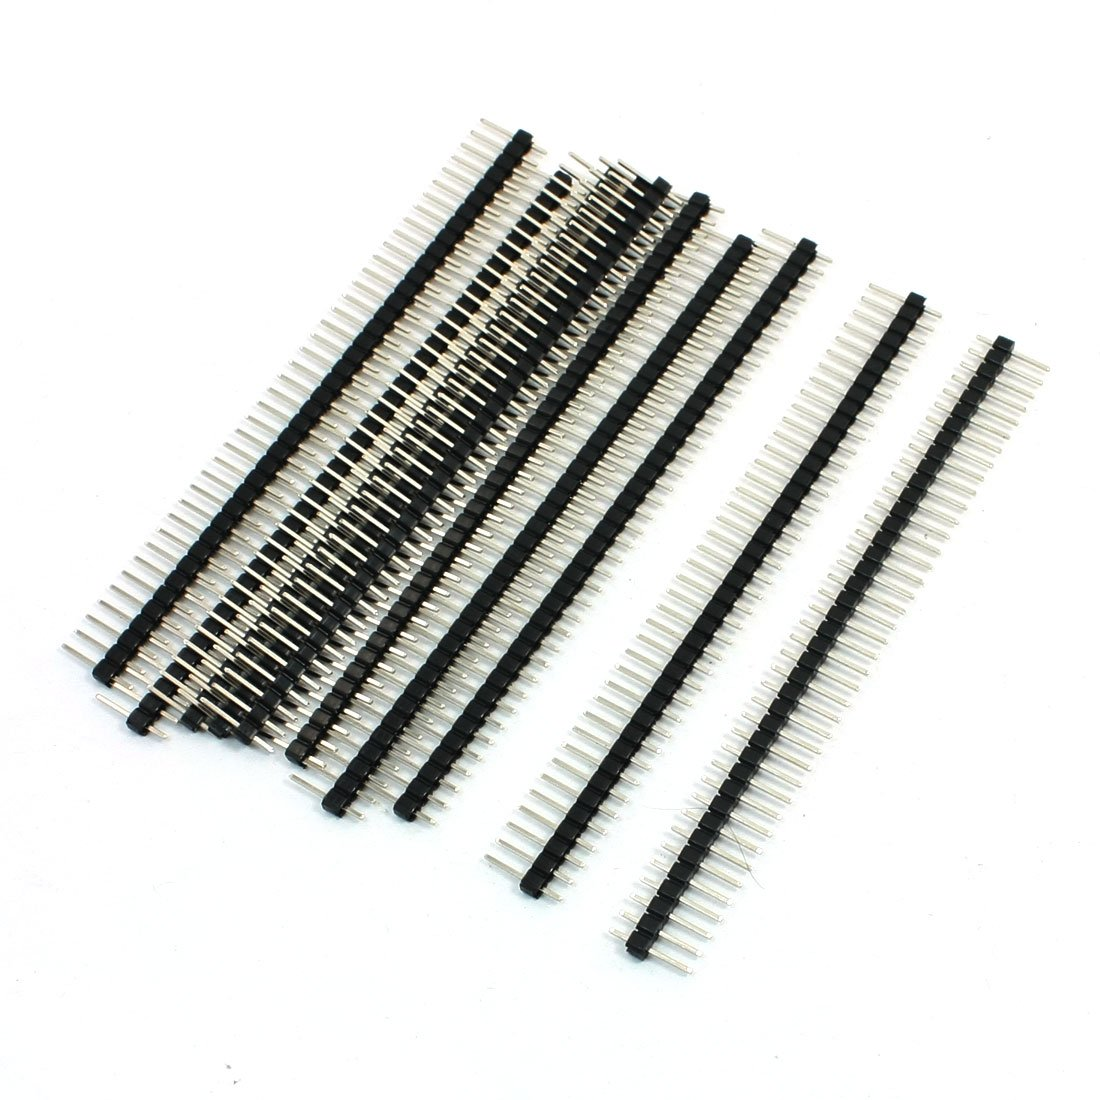 IMC Hot 1x40 Pins Male 2.54 mm Pitch Single Row Pin Header Strip 10 Pcs imc hot single row 4 pin 4 position speaker terminal board connectors 5 pcs